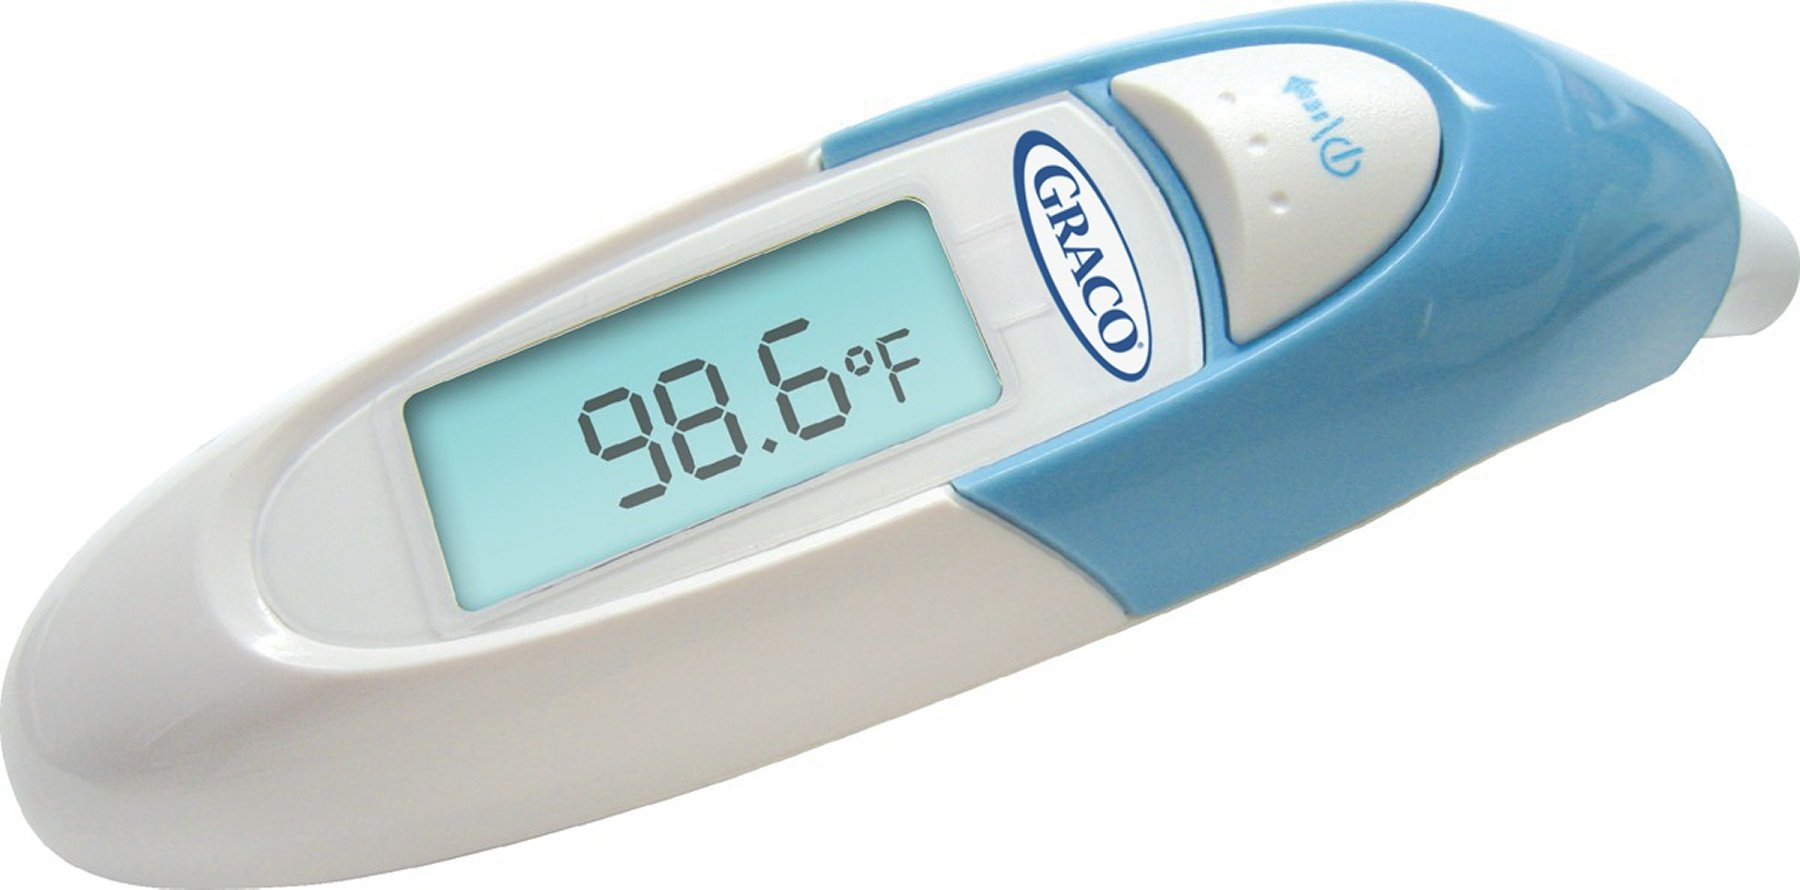 Graco 1 Second Ear Thermometer by Graco